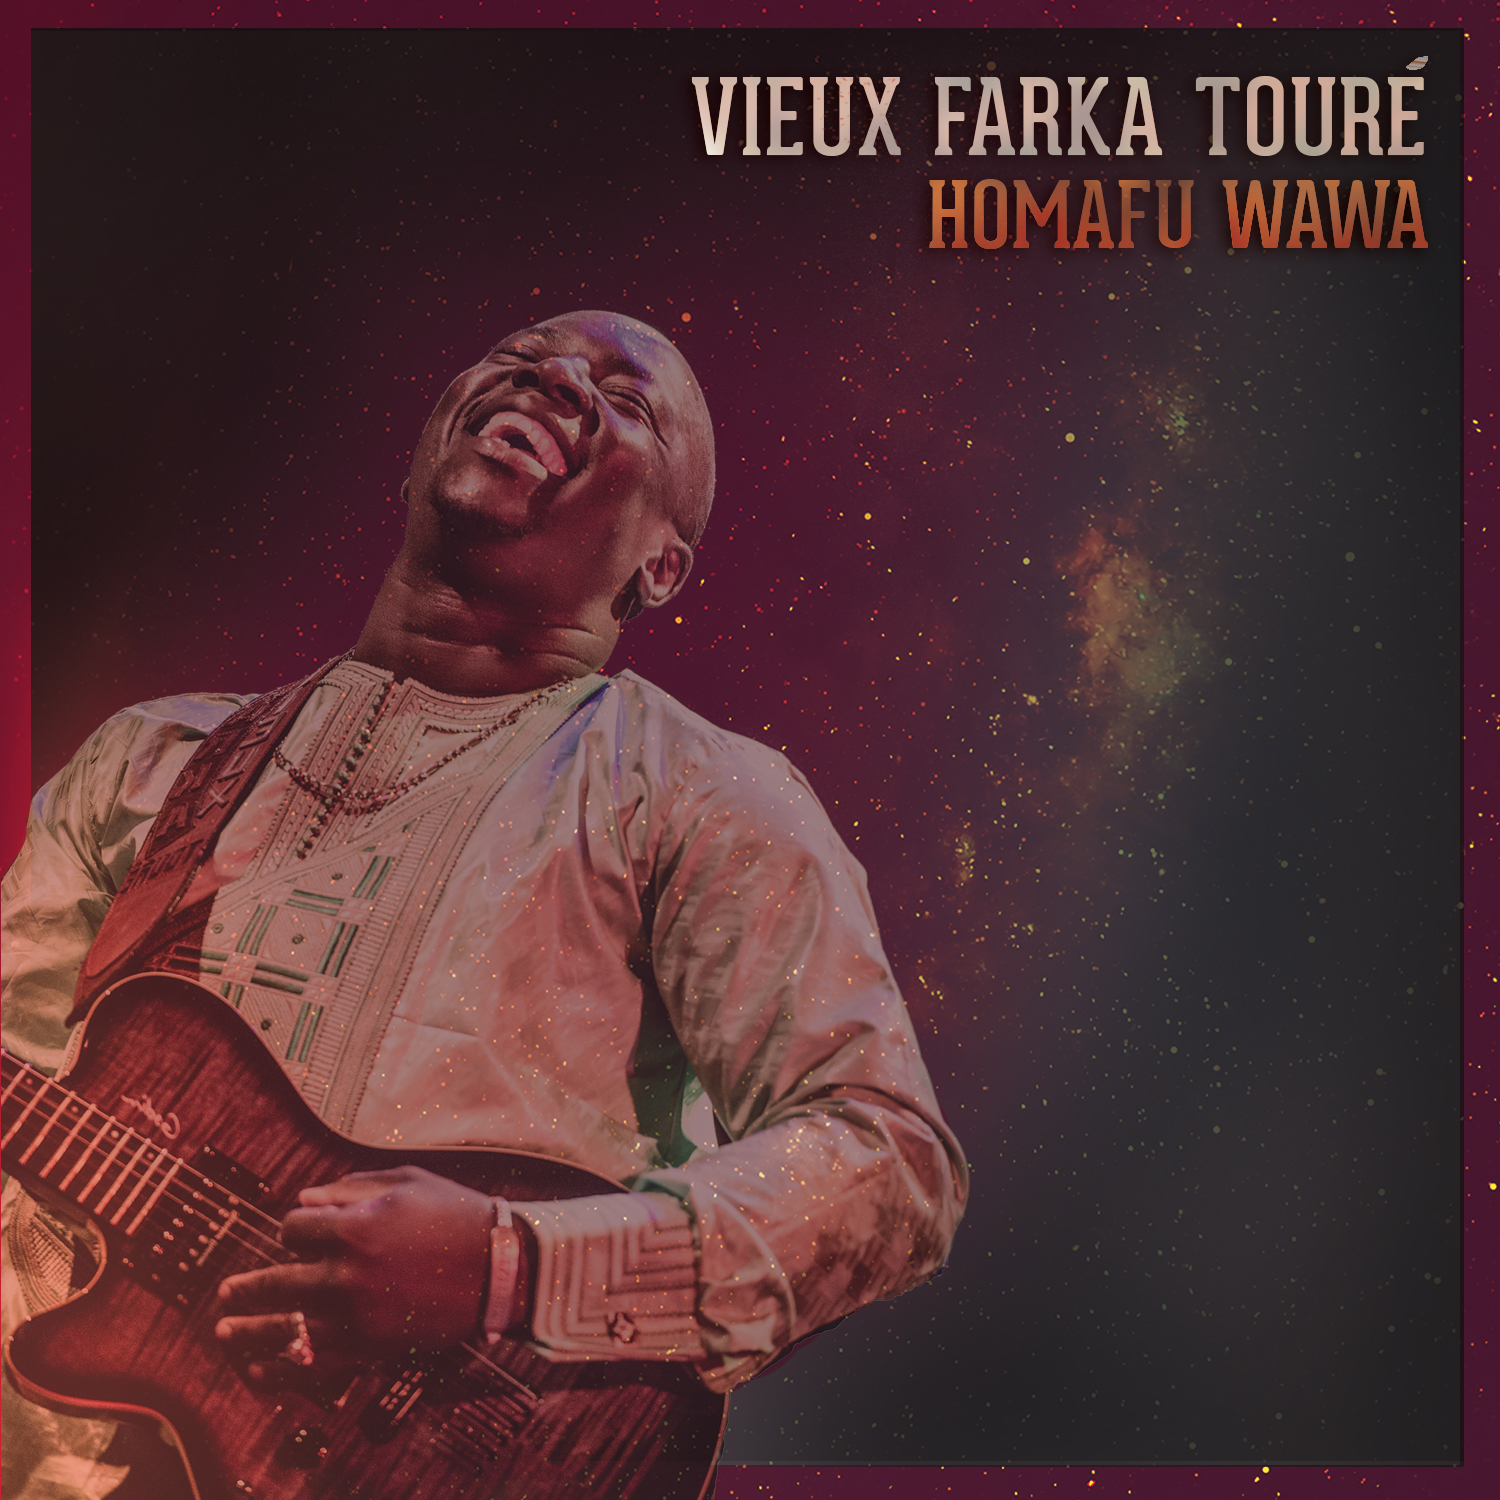 Vieux Farka Touré's new single is now available